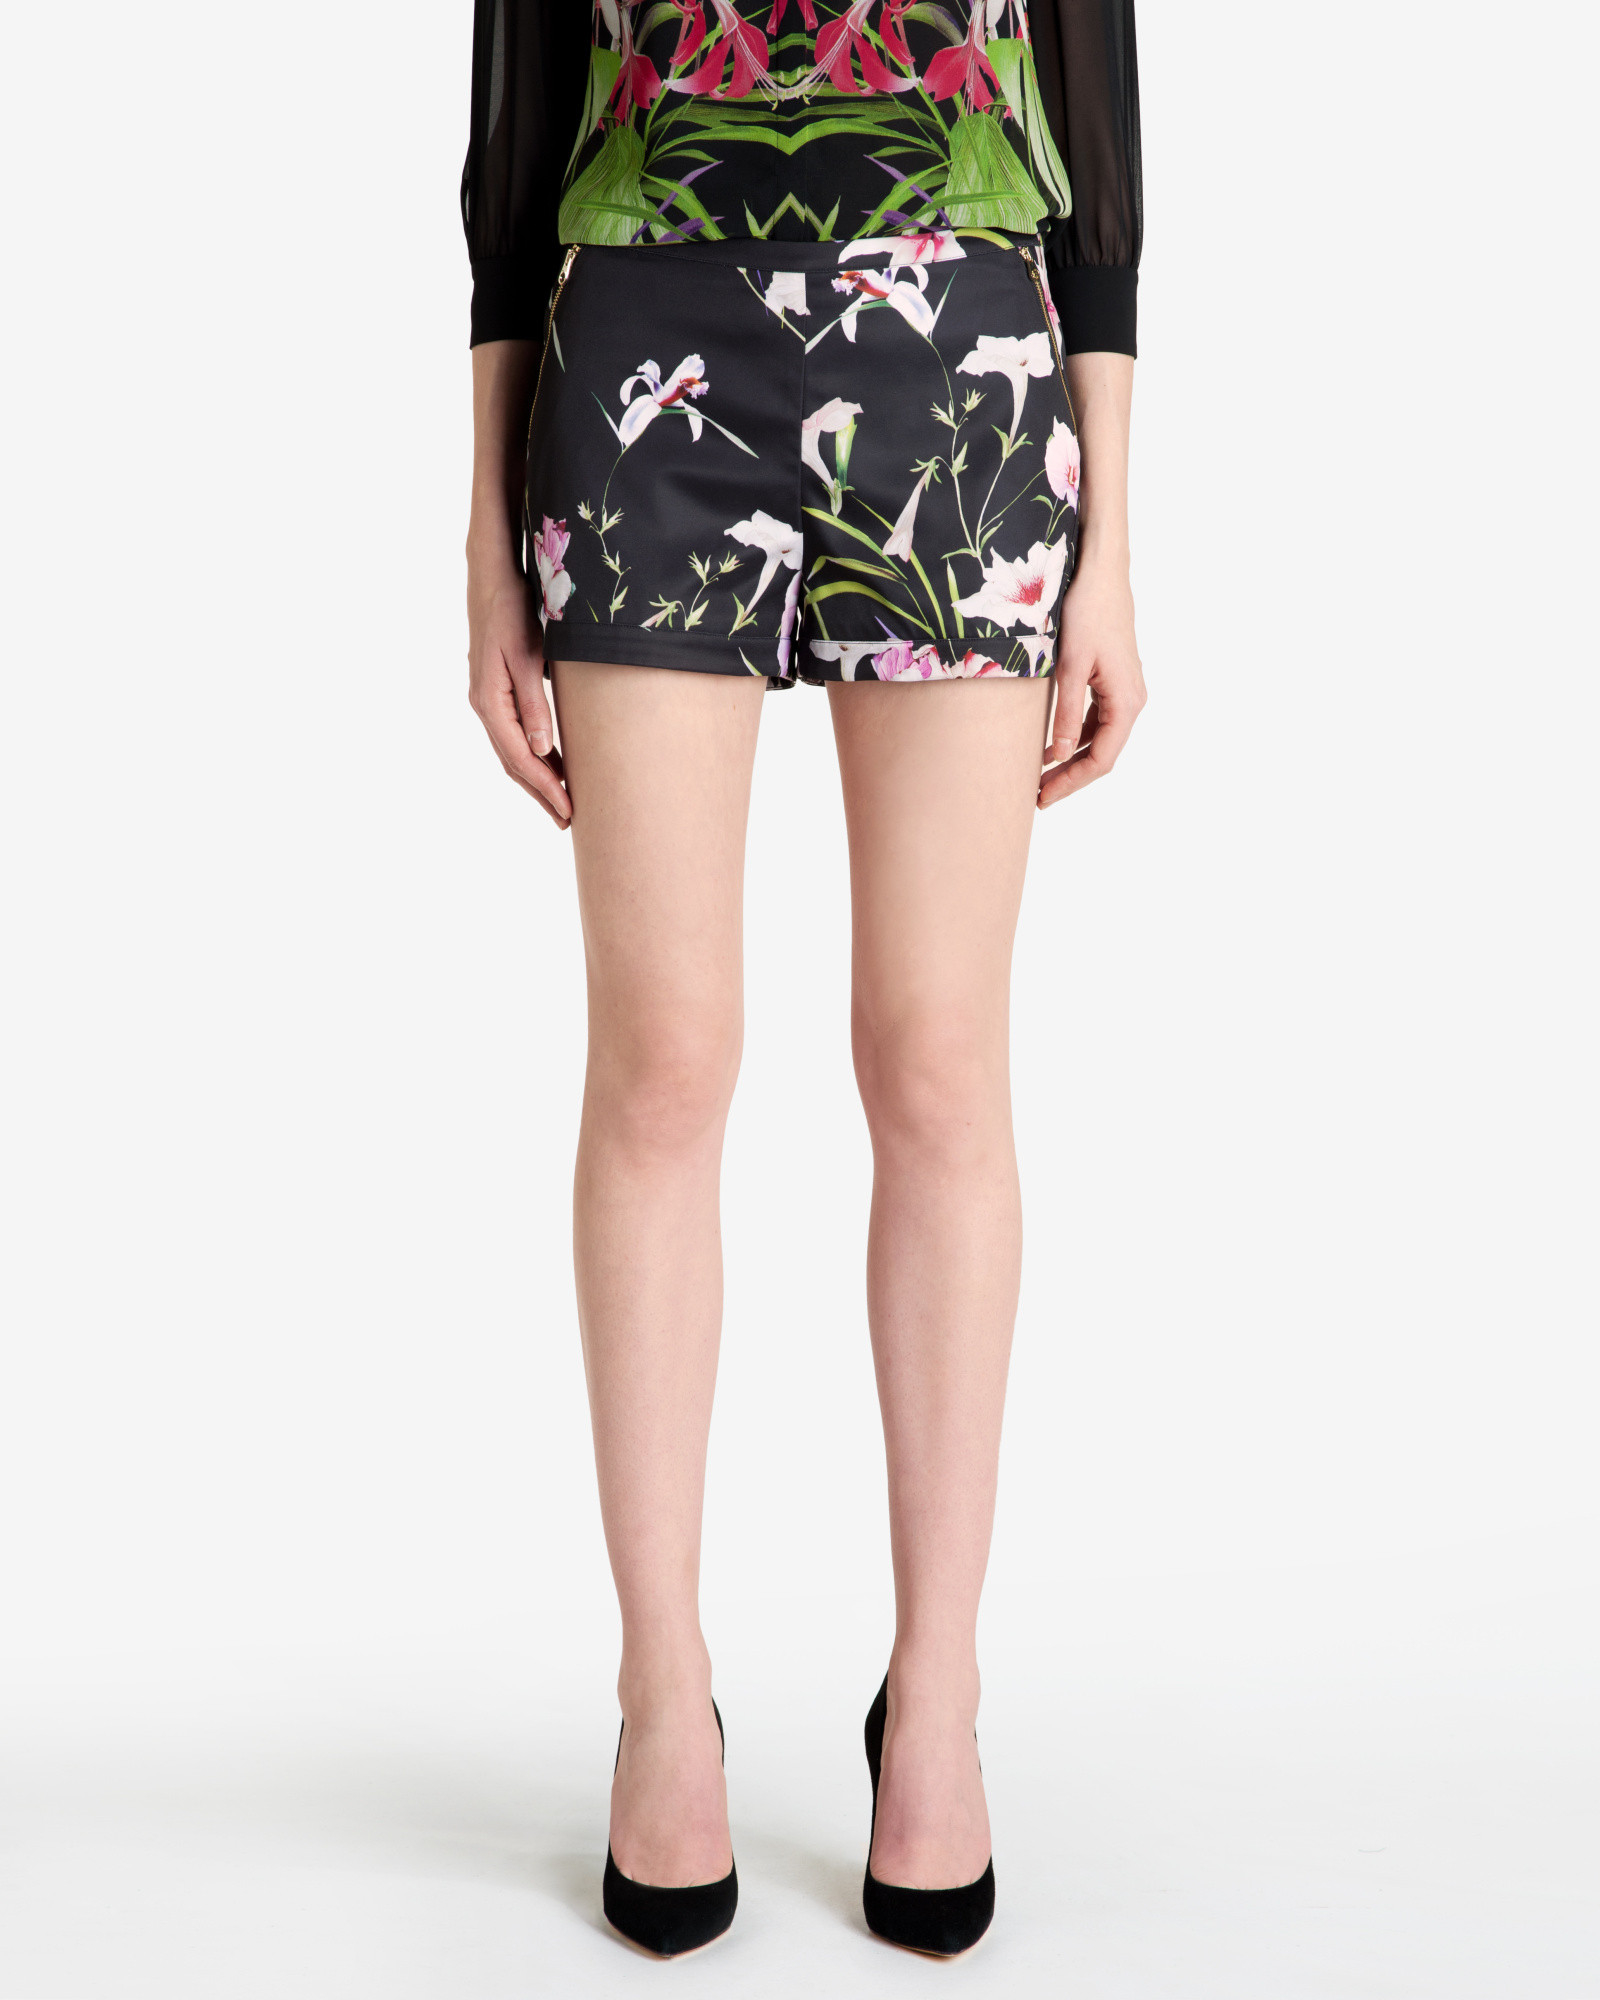 710109126 Lyst - Ted Baker Mirrored Tropics Shorts in Black